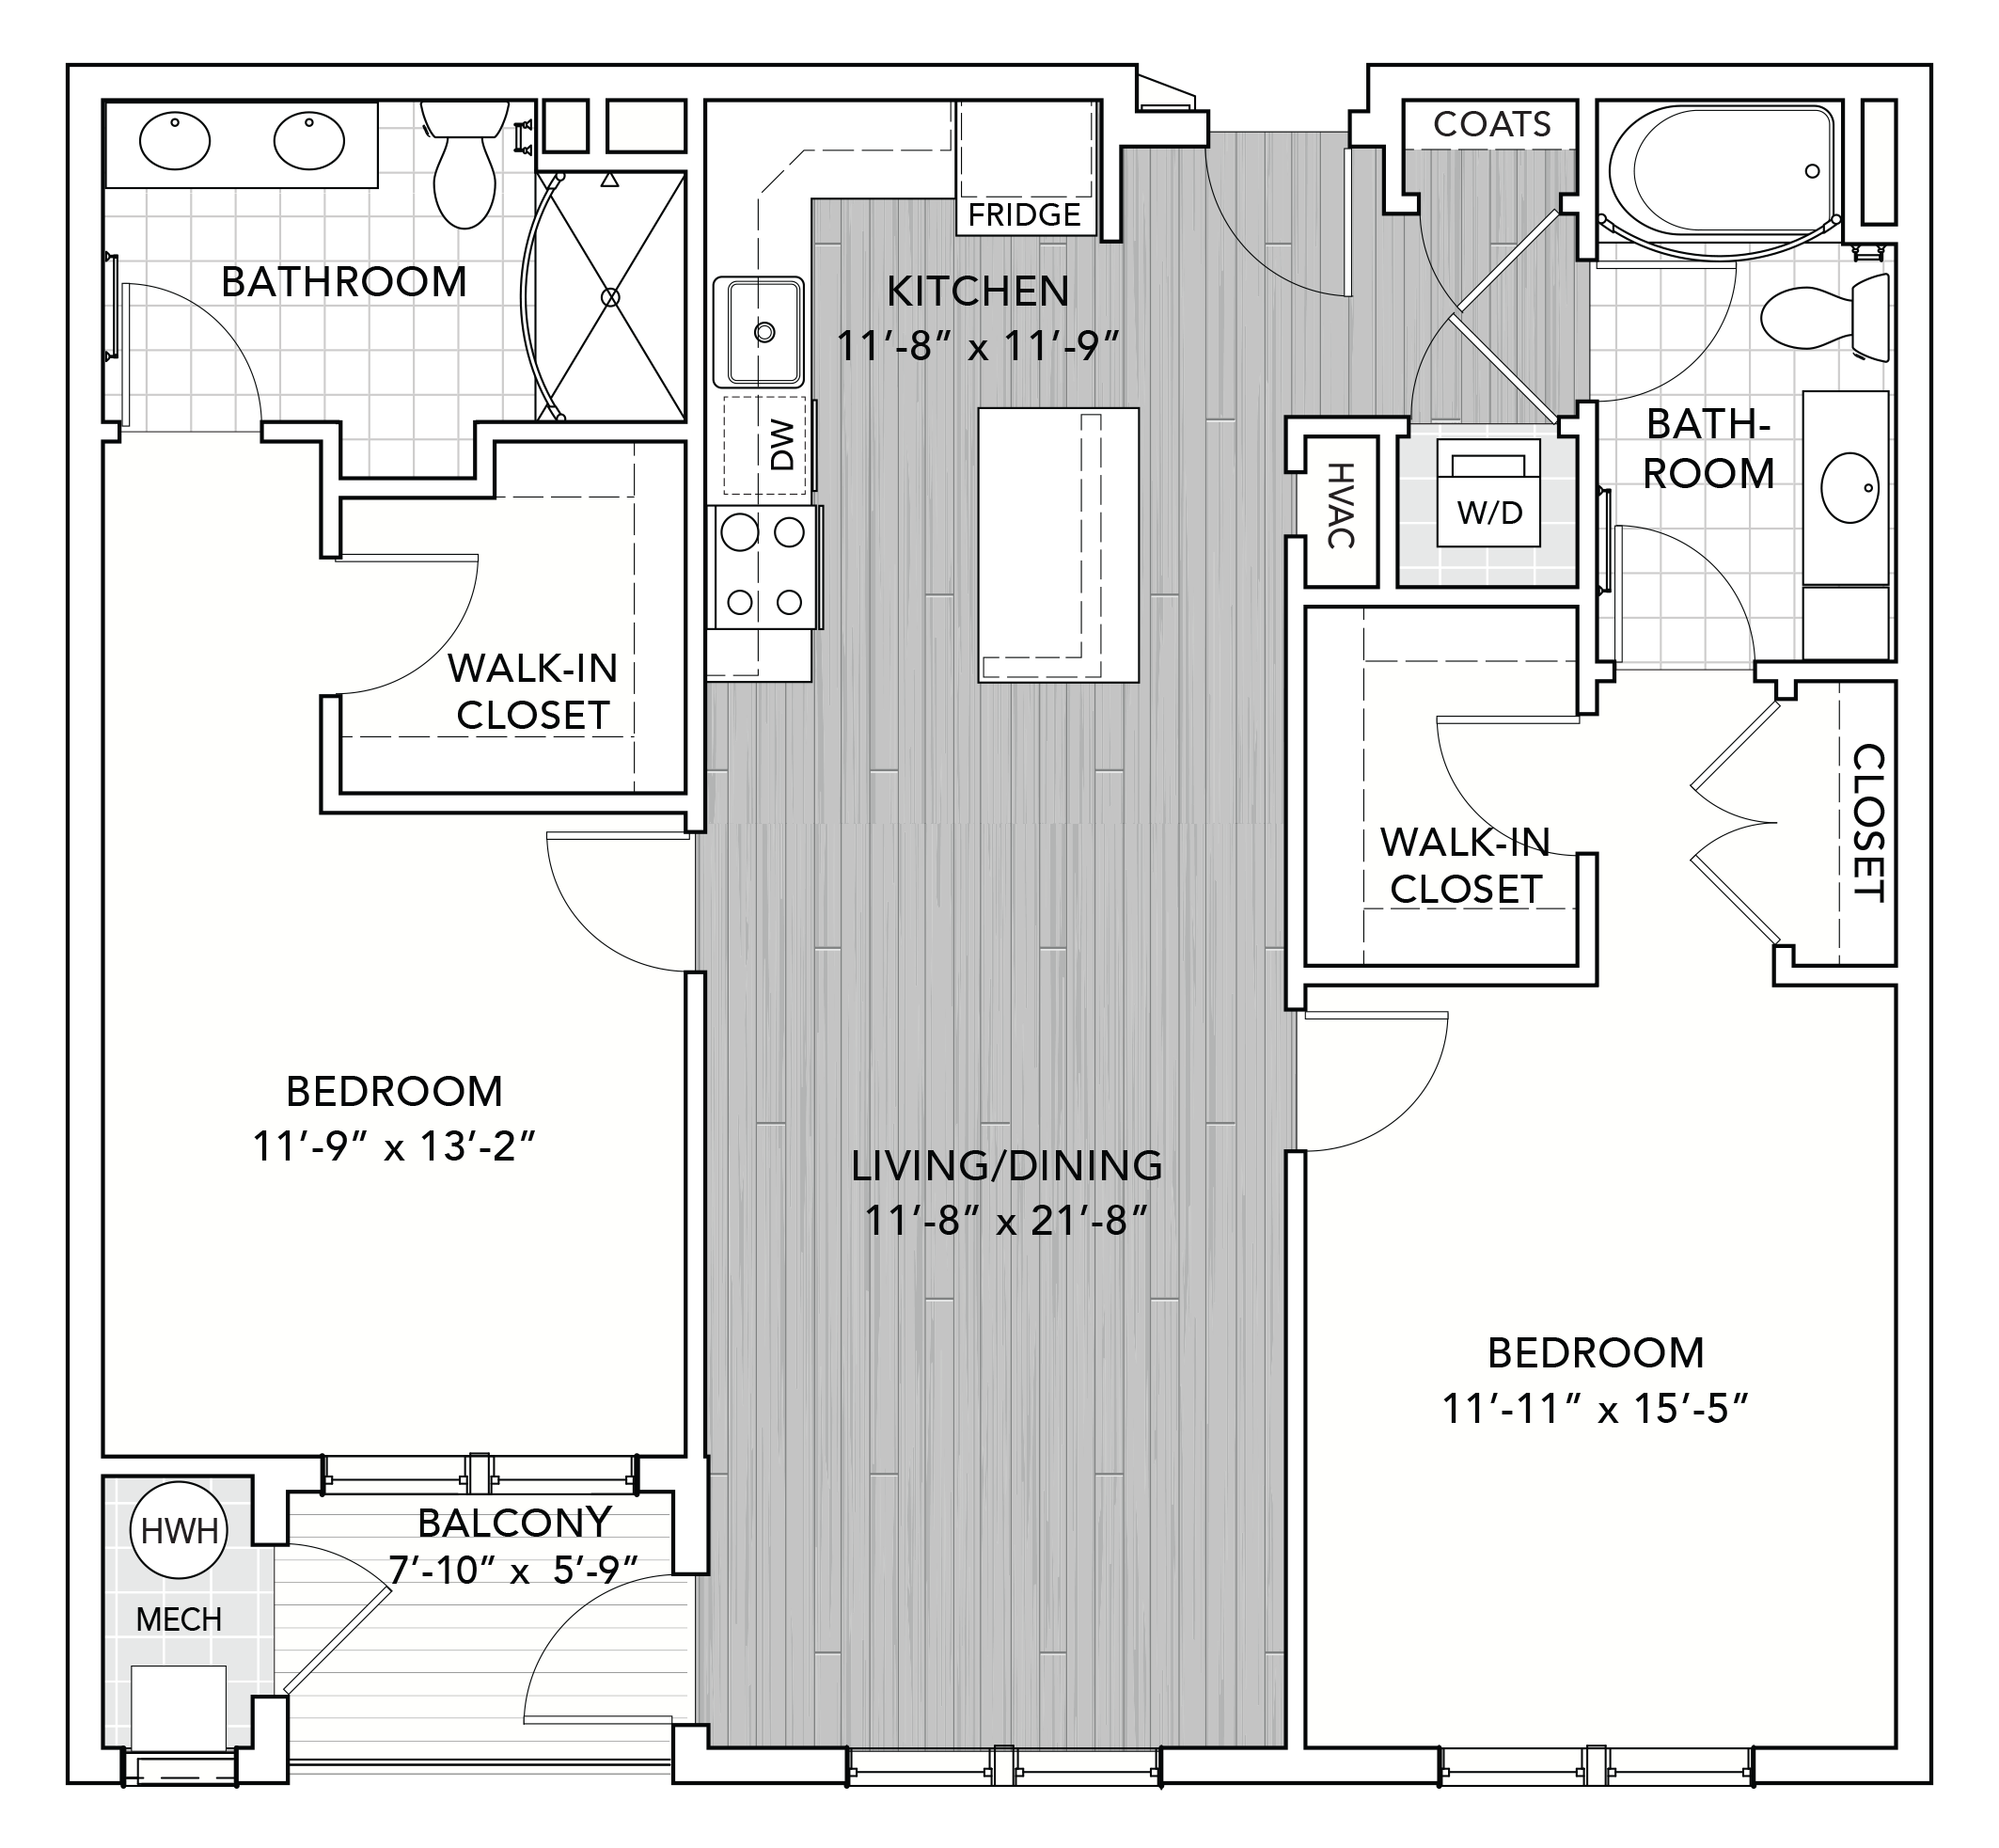 P0655013 parksquare b61 1236 2 floorplan